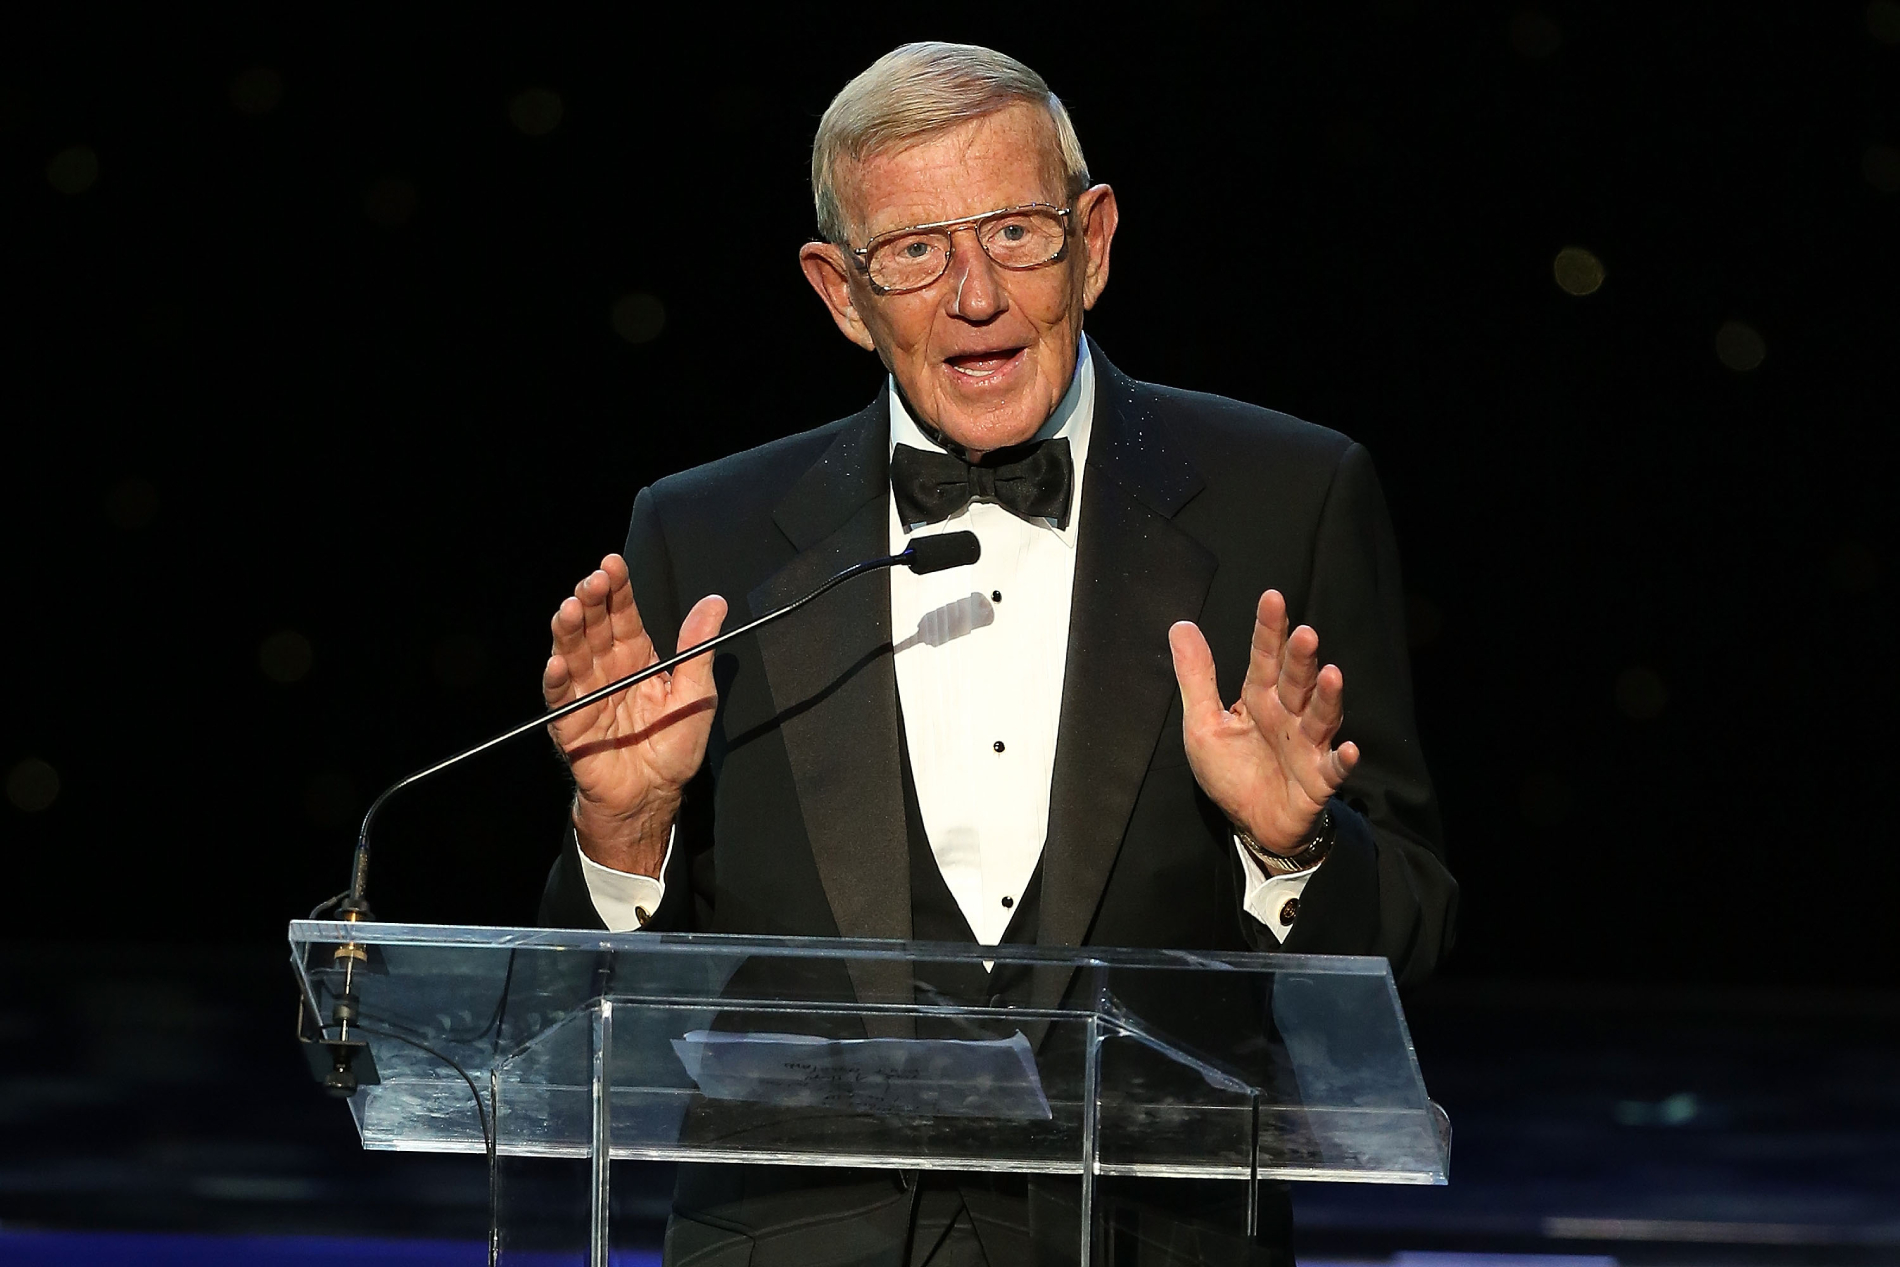 Lou Holtz has made plenty of controversial comments over the years, but his success as a coach and at ESPN helped him become pretty wealthy.